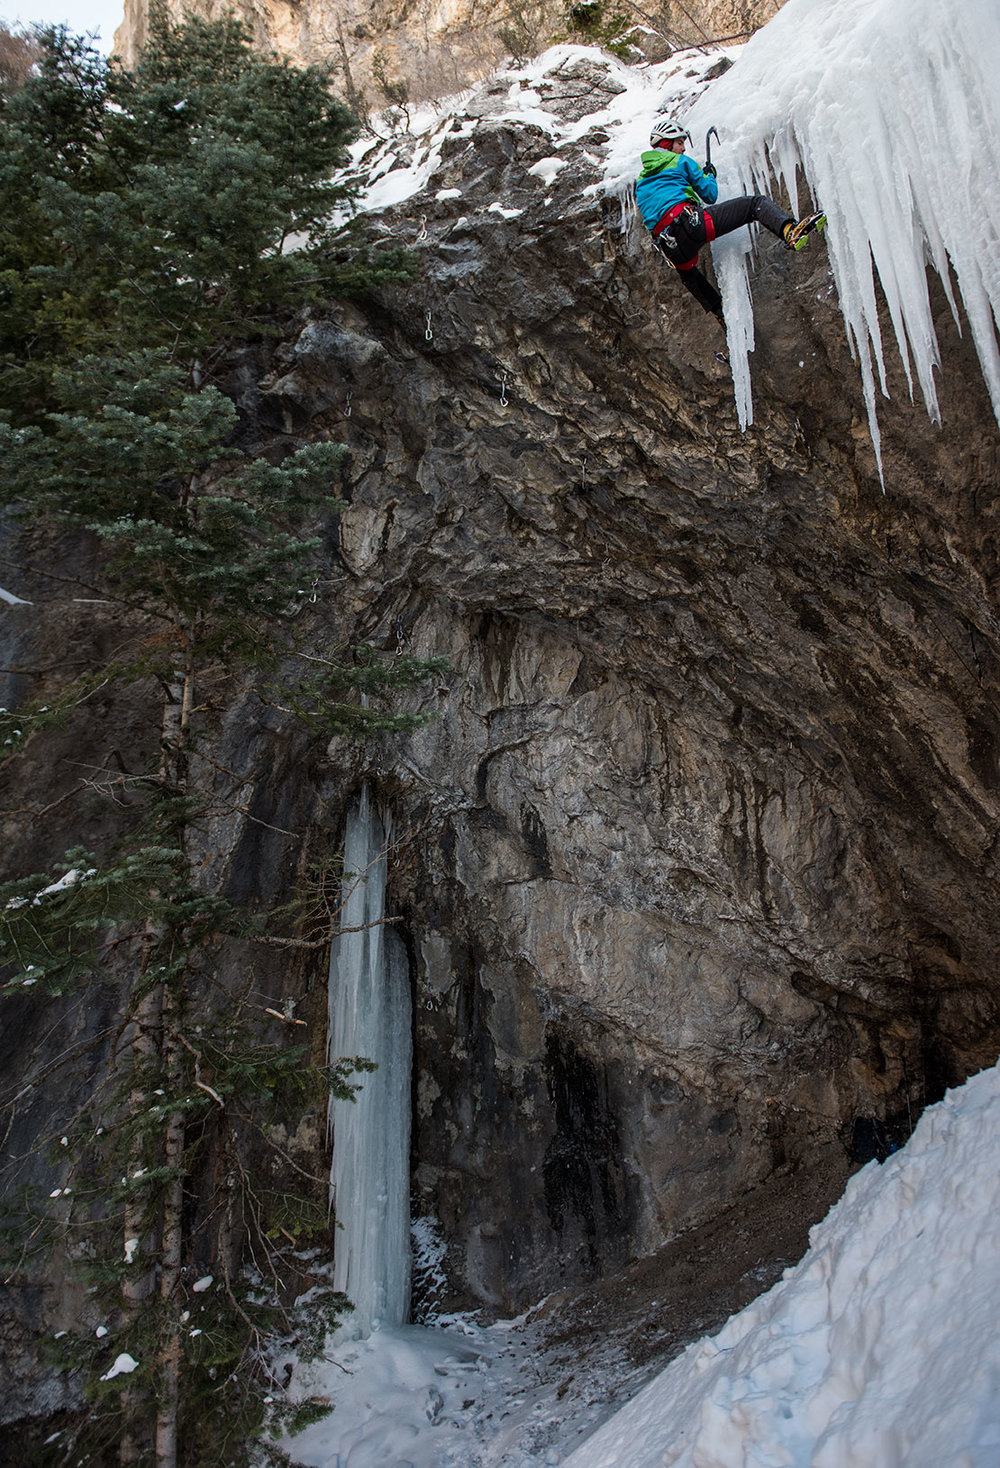 Lane_Peters_Multimedia_Mark-Pugliese_Santaquin_ice_Climbing.jpg